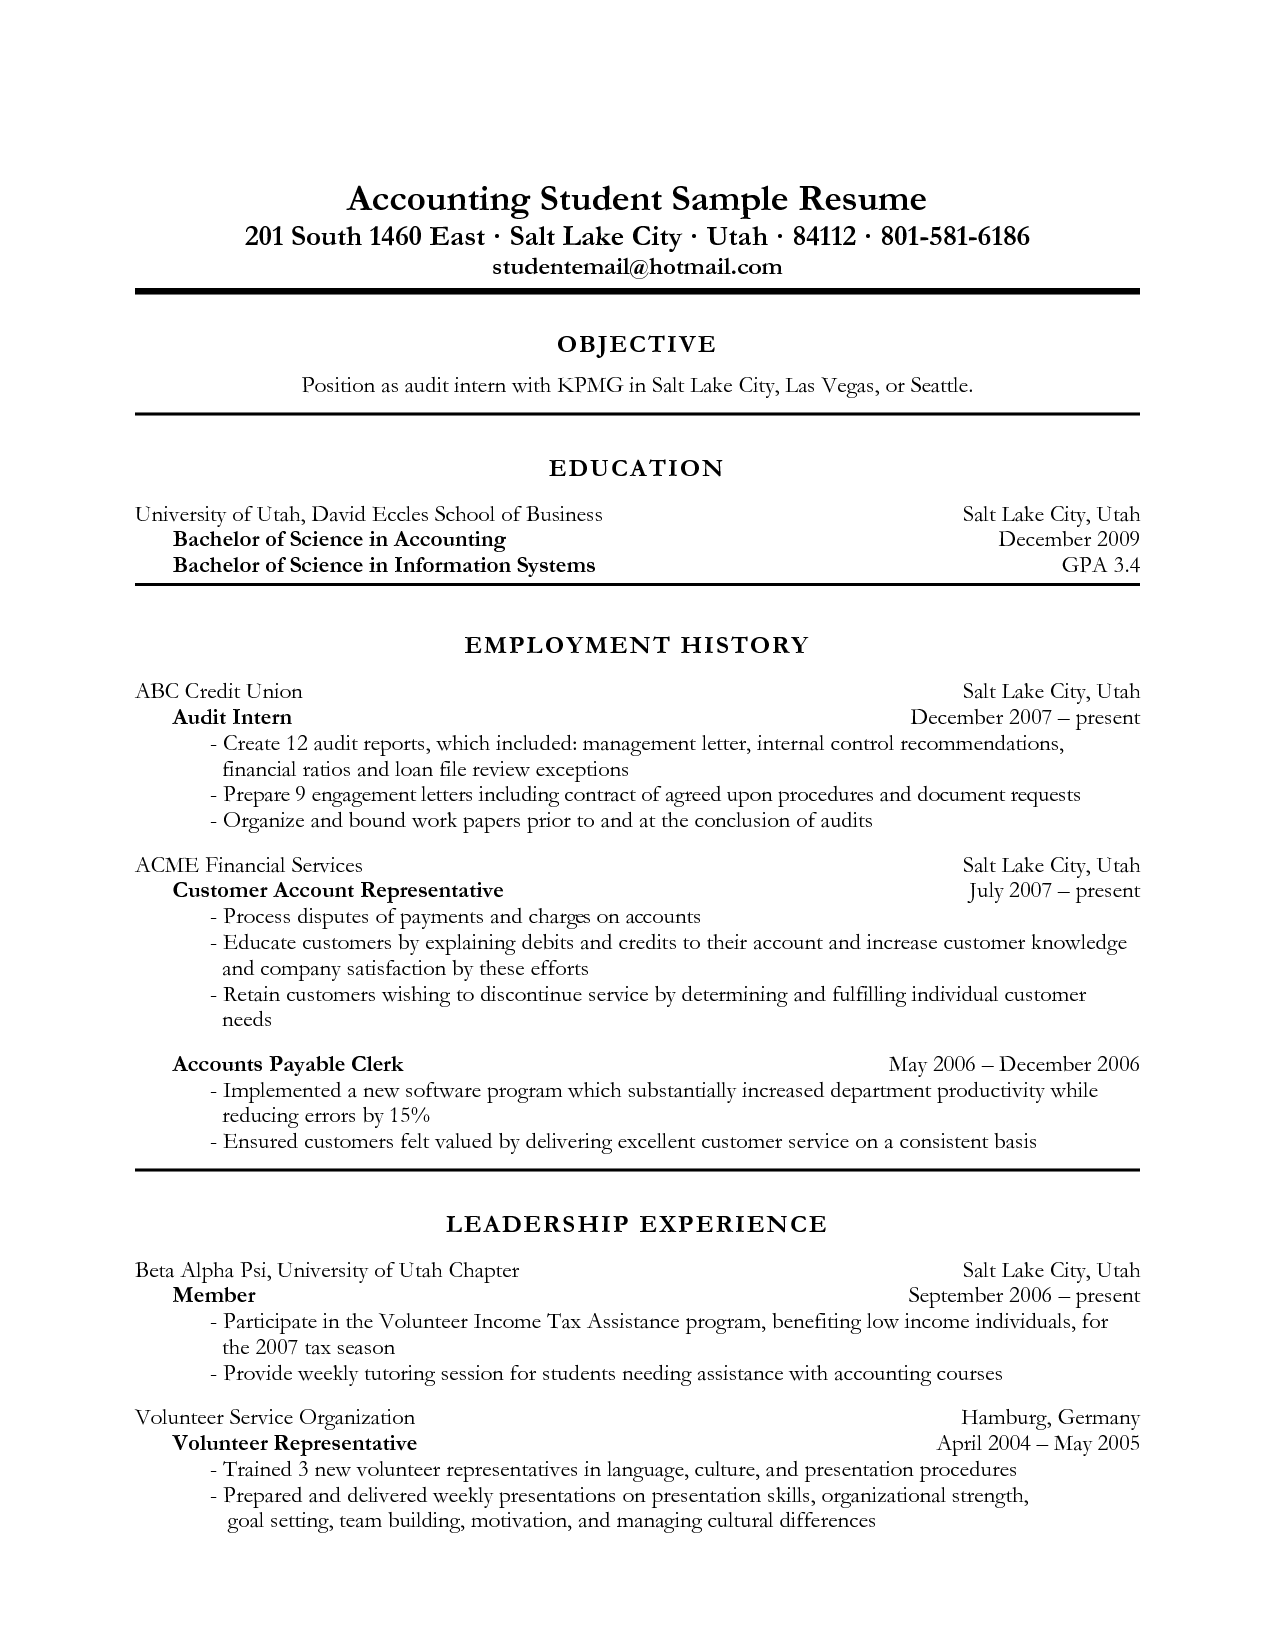 Accounting Resume Objective Examples Resume objective